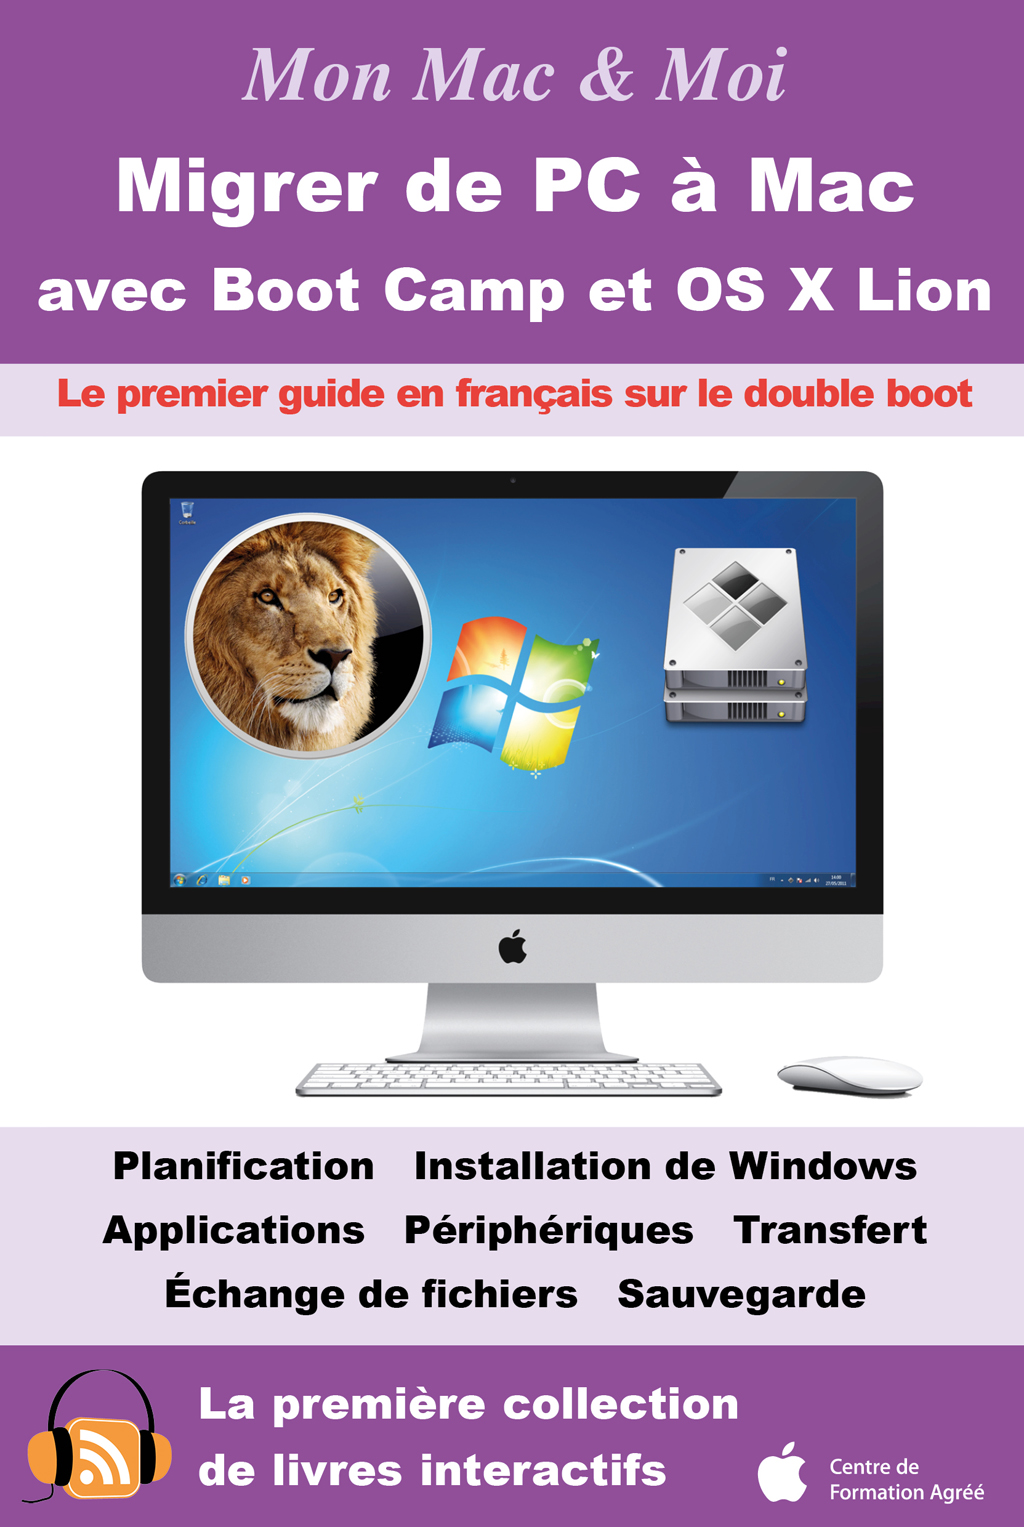 Migrer de PC à Mac avec Boot Camp et OS X Lion : Double boot OS X Lion et Windows 7